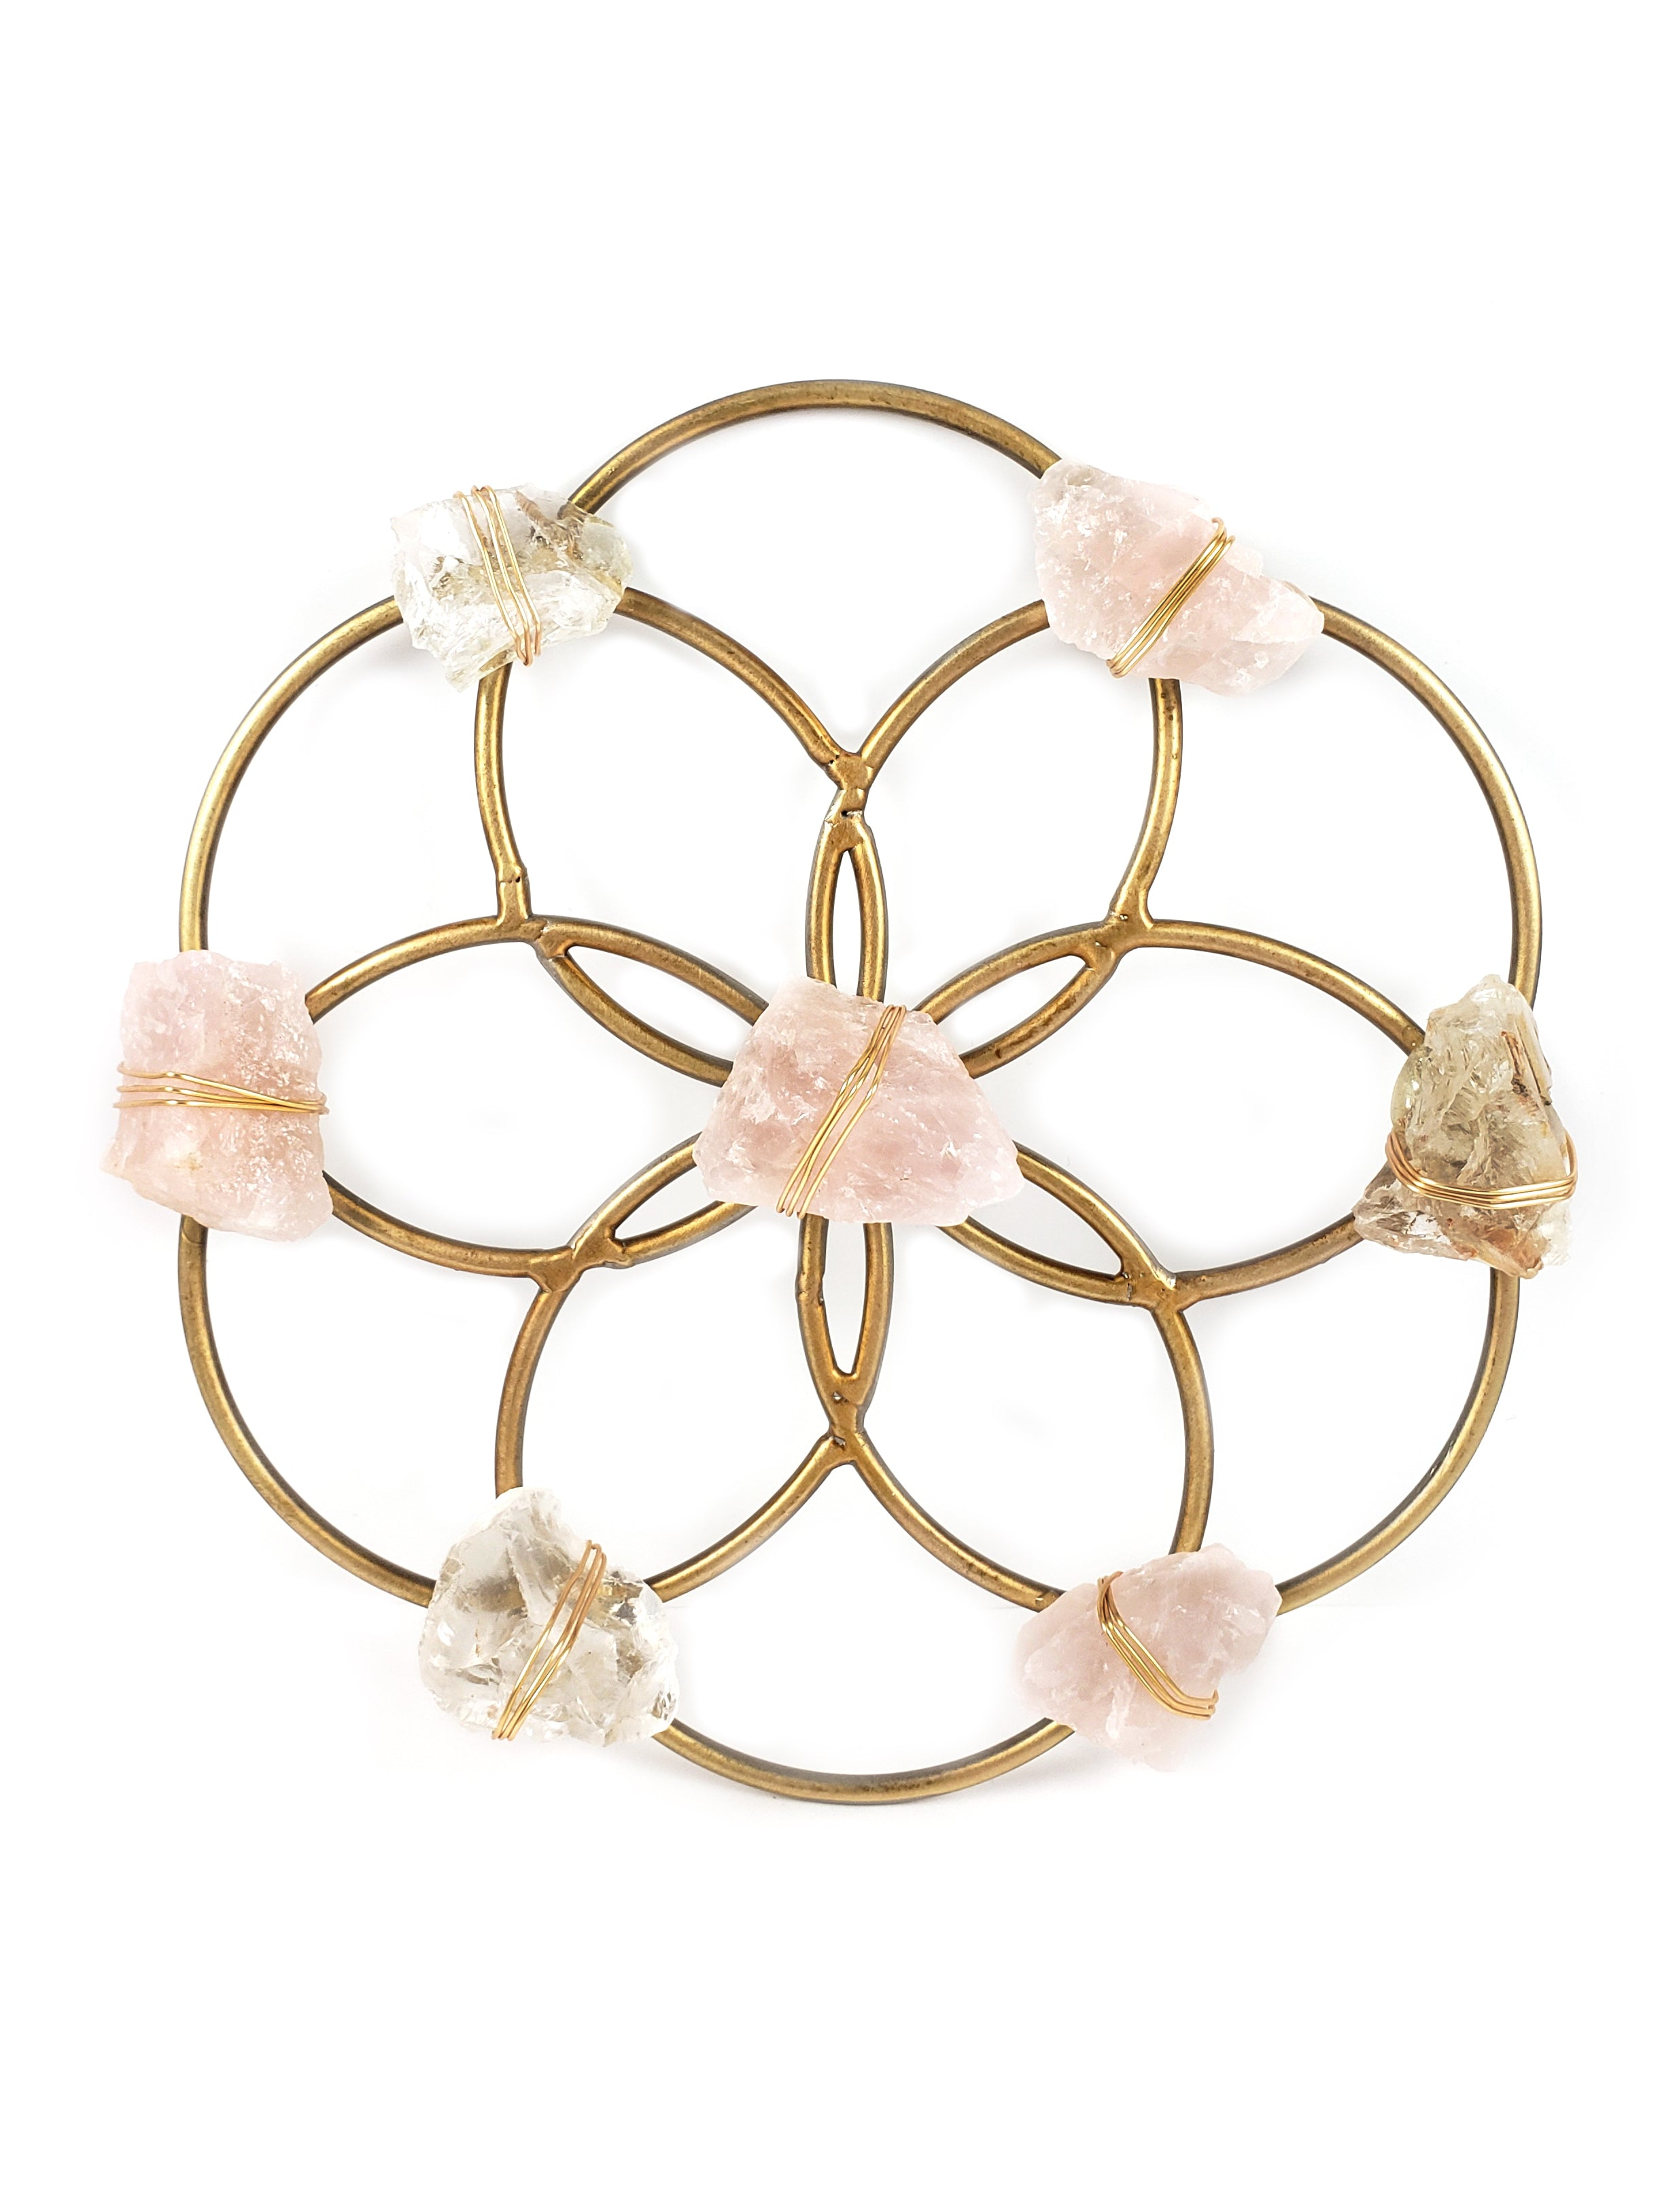 Small Flower of Life Crystal Grid - Rose Quartz and Quartz